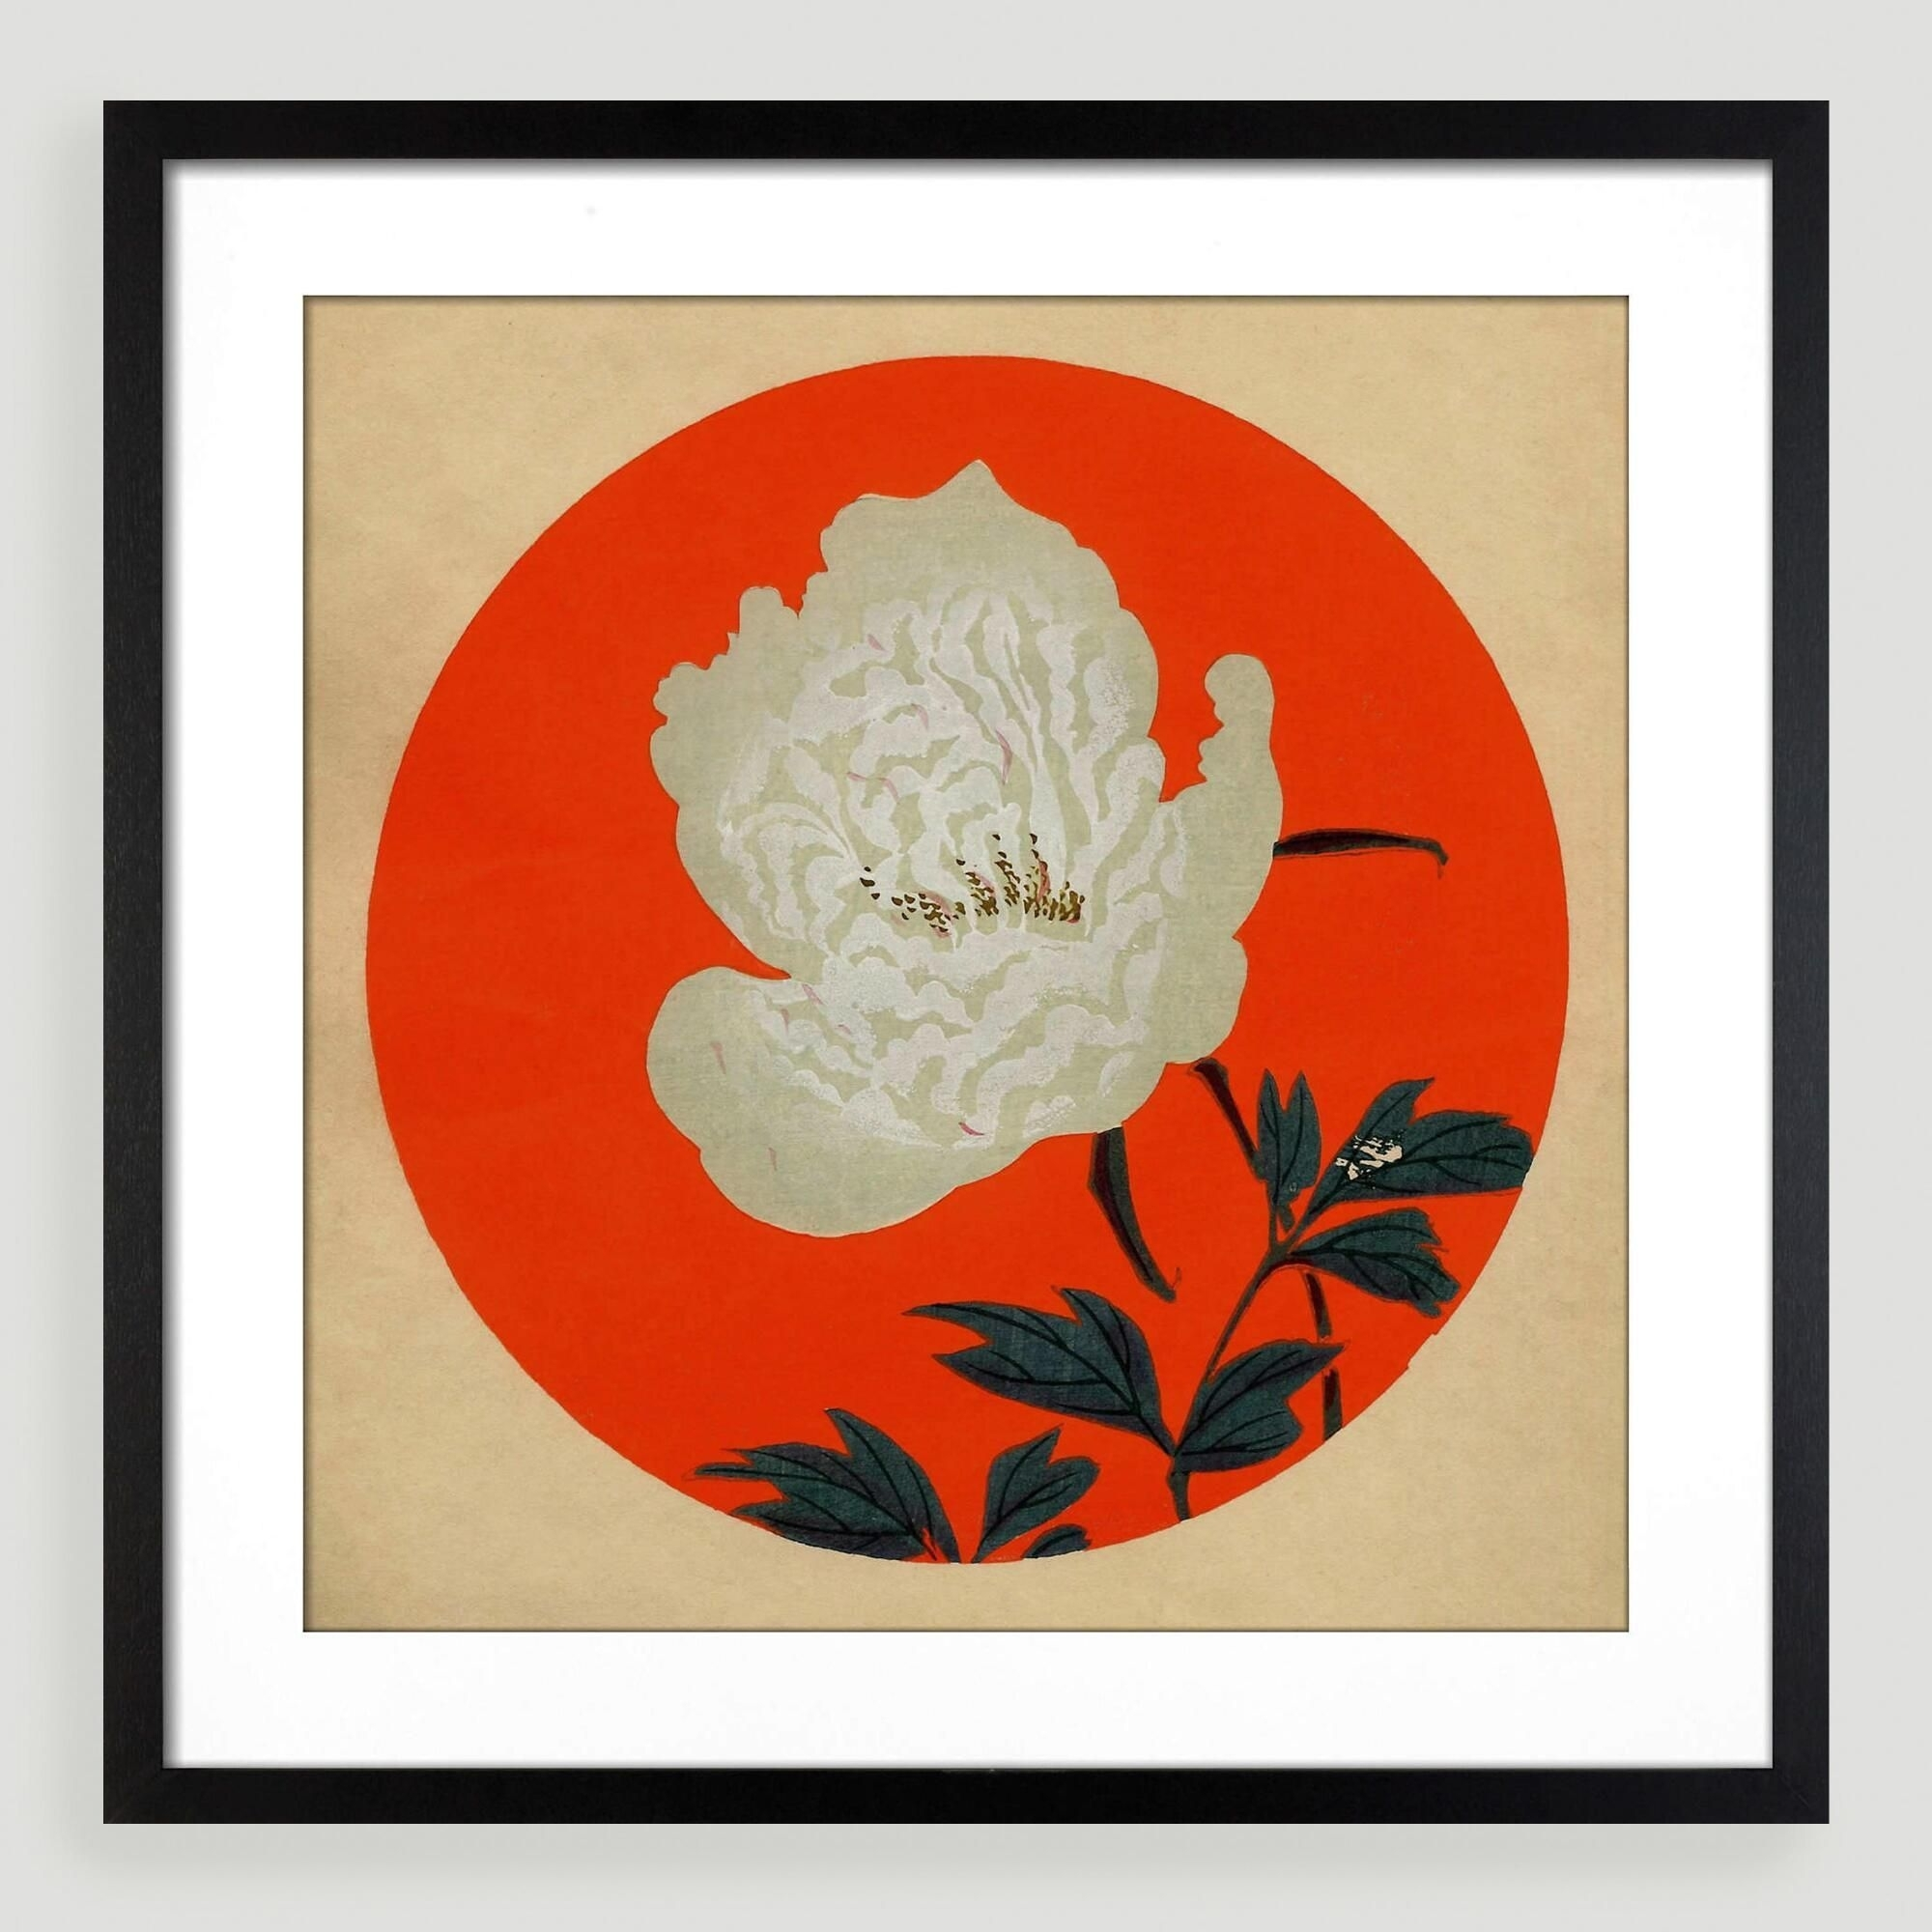 18Th Century Japanese Wall Art | World Market | Home Goods, Decor Within Best And Newest World Market Wall Art (View 1 of 20)